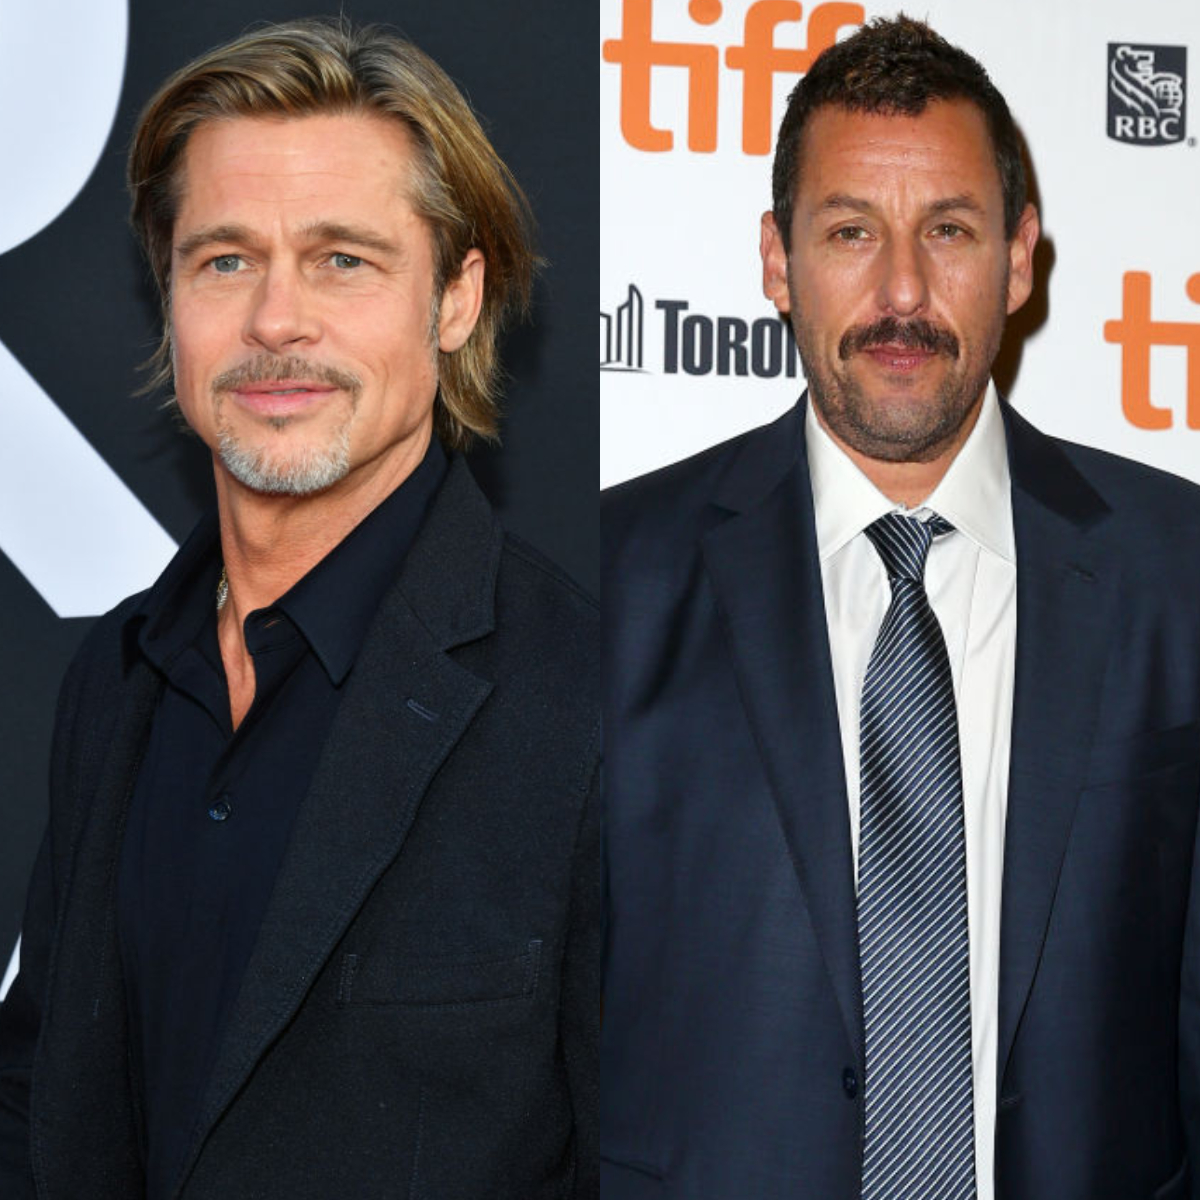 Brad Pitt and Adam Sandler took great efforts to disguise themselves but FAILED royally; Details Inside